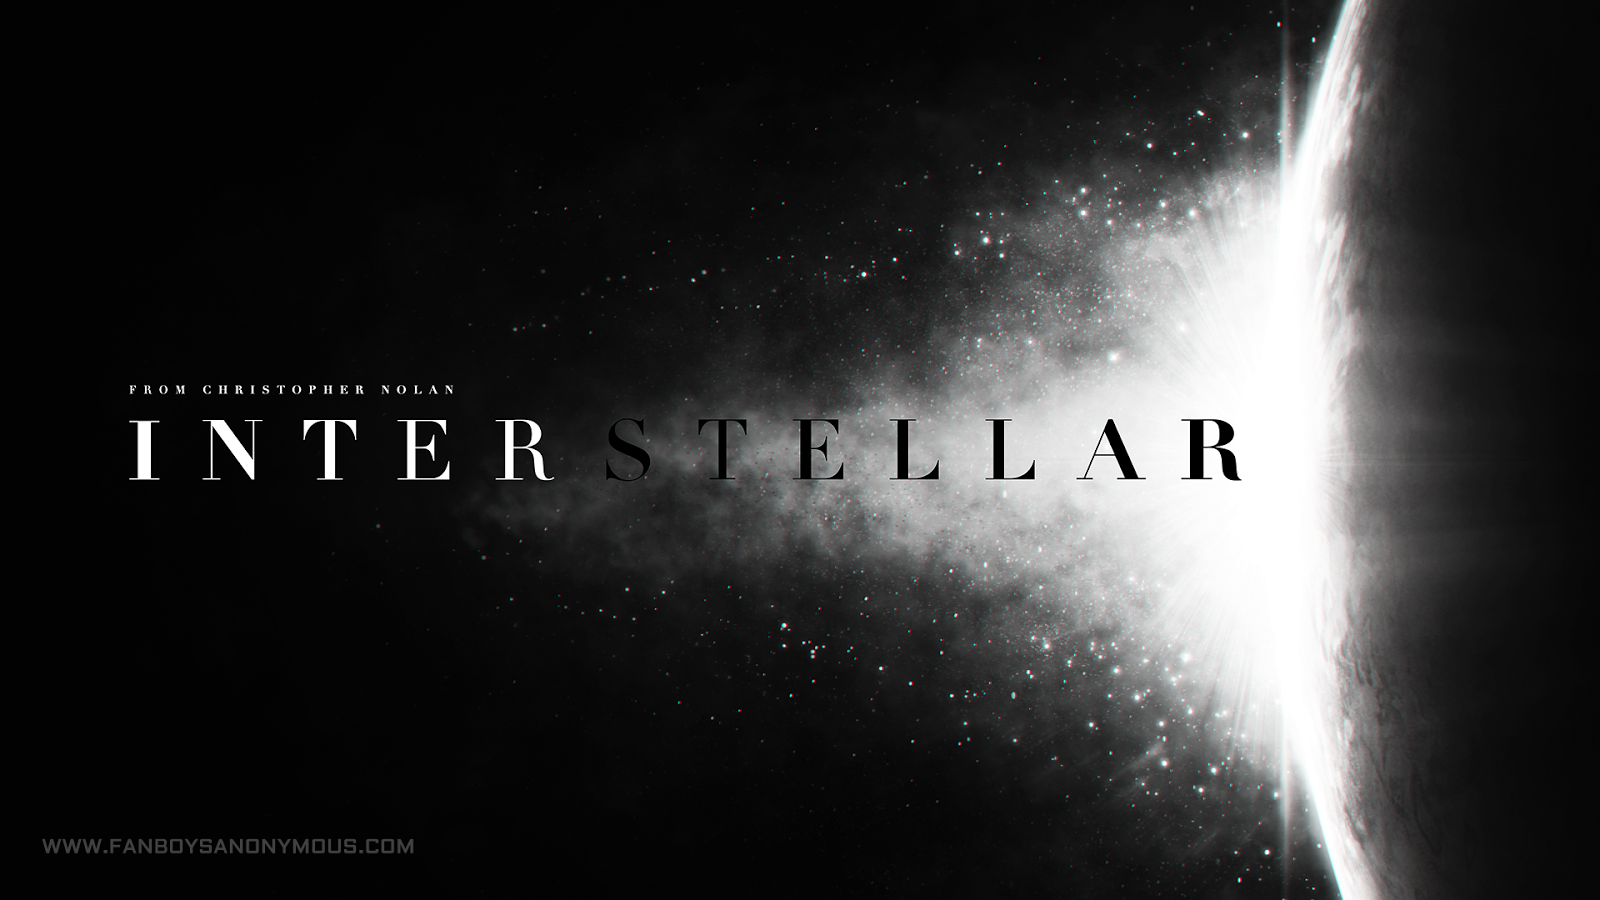 HD images Interstellar screen shots